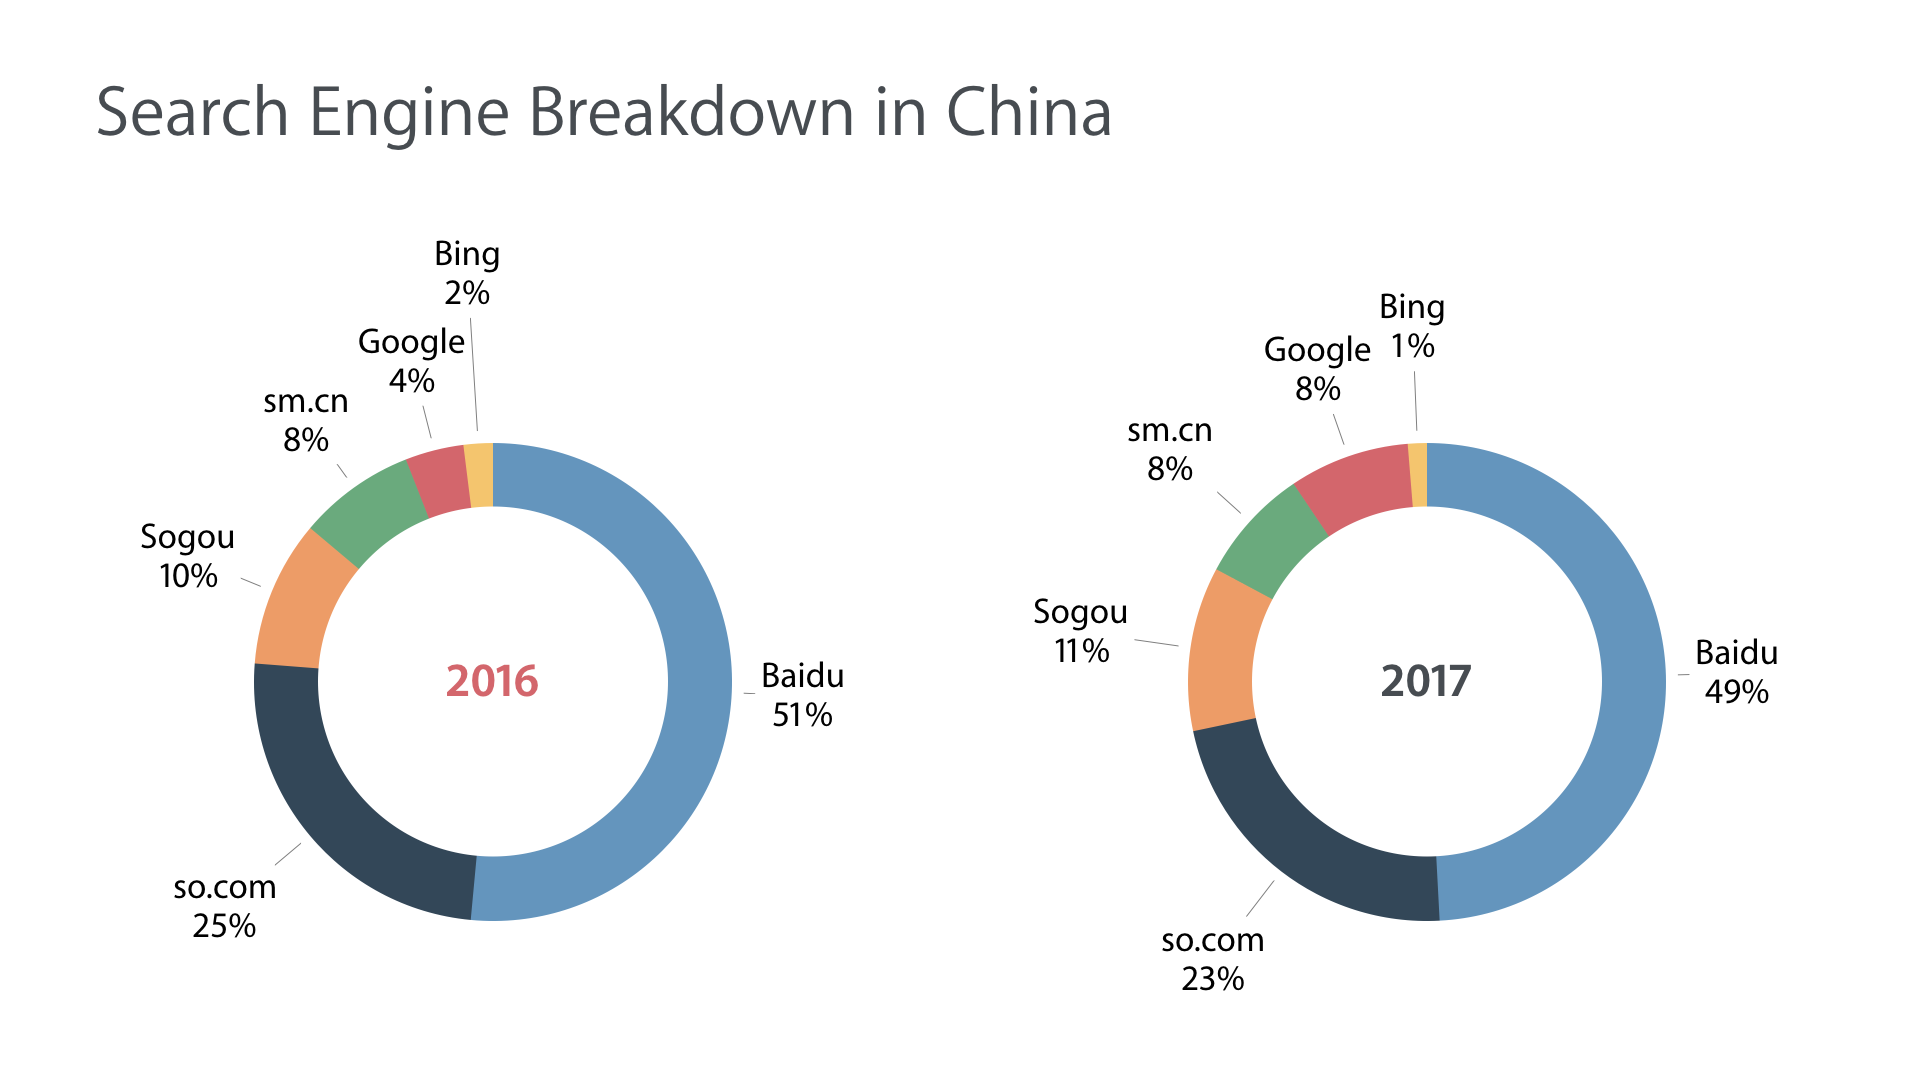 Search Engine Distribution for China between 2016 and 2017. Baidu is losing grounds to new search engines in China, including sm.cn and so.com. Google grew it's market share as well, but it's dwarfed by its Chinese competitors